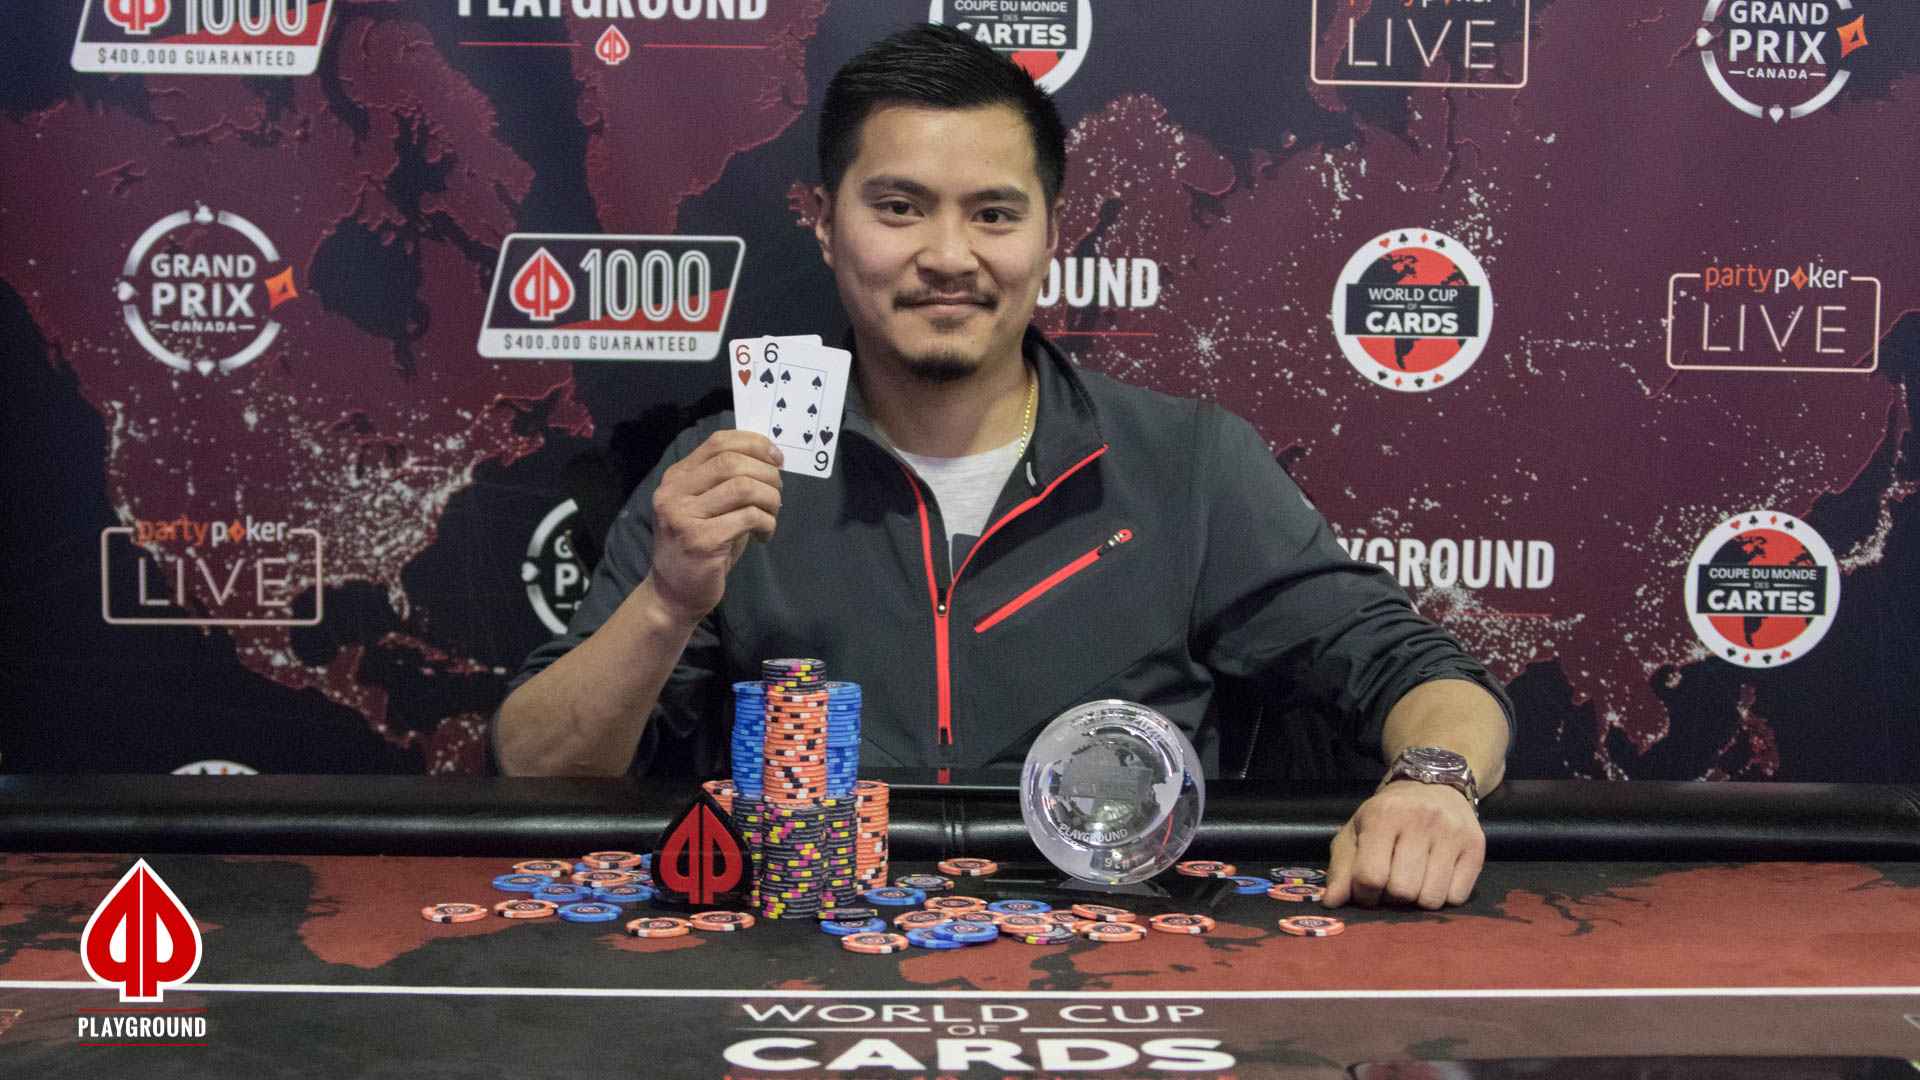 Le Champion du Playground 1000: Noeung Troeung